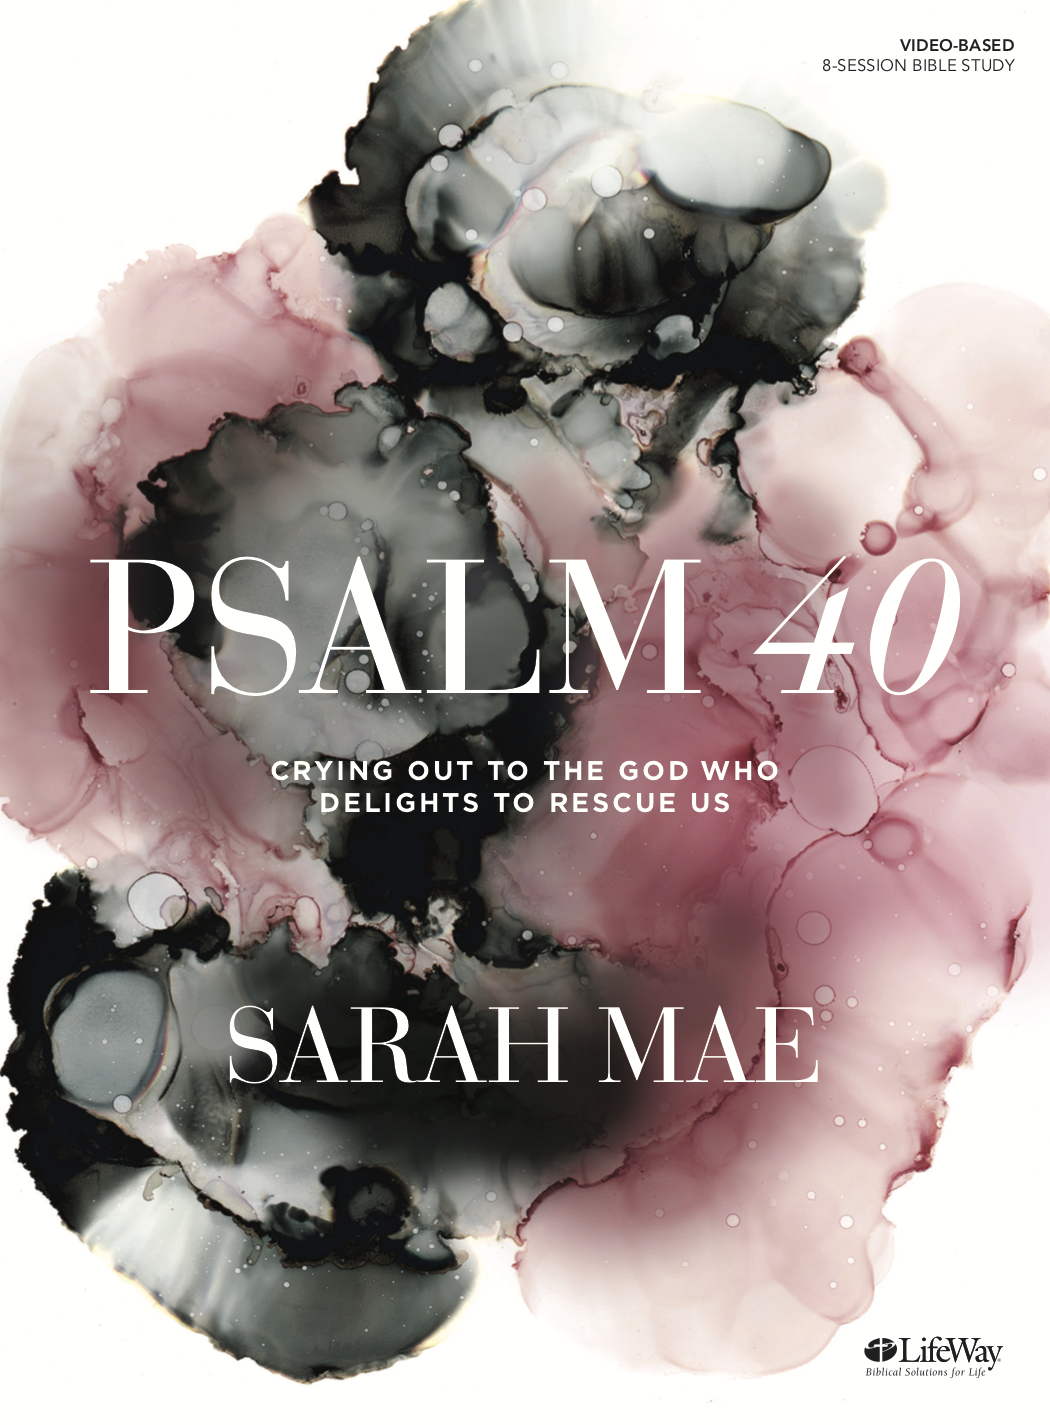 My God, do not delay. - Psalm 40:17 - Does God really see me? Does He really care?When life hits hard and you aren't sure what to do, it can be confusing, lonely, and seemingly hopeless.Psalm 40 is the good news that God hears our cries and delights to rescue us. In this 8-session study, examine Psalm 40, ask honest questions of yourself and the Bible, and learn how to stay faithful to God amidst painful and hard times. Trace the thread of joy and purpose that comes from delighting in the Lord and the healing that only He can bring to His children.